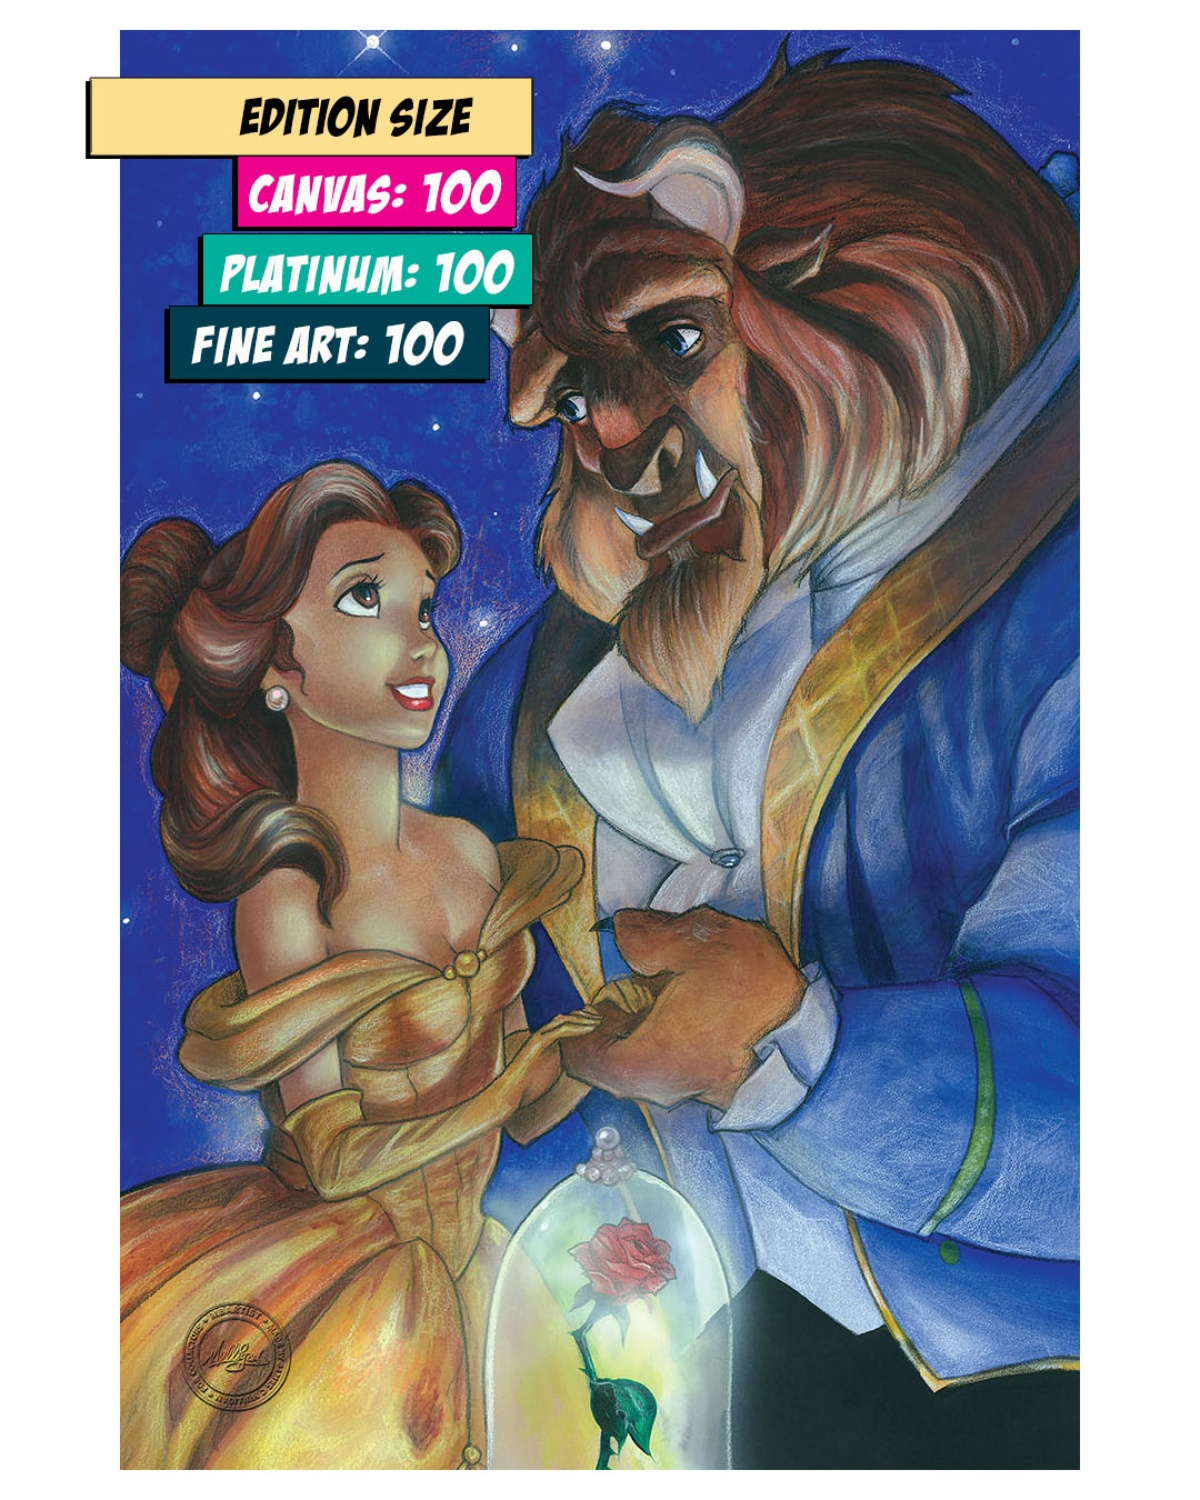 BEAUTY AND THE BEAST: TALE AS OLD AS TIME